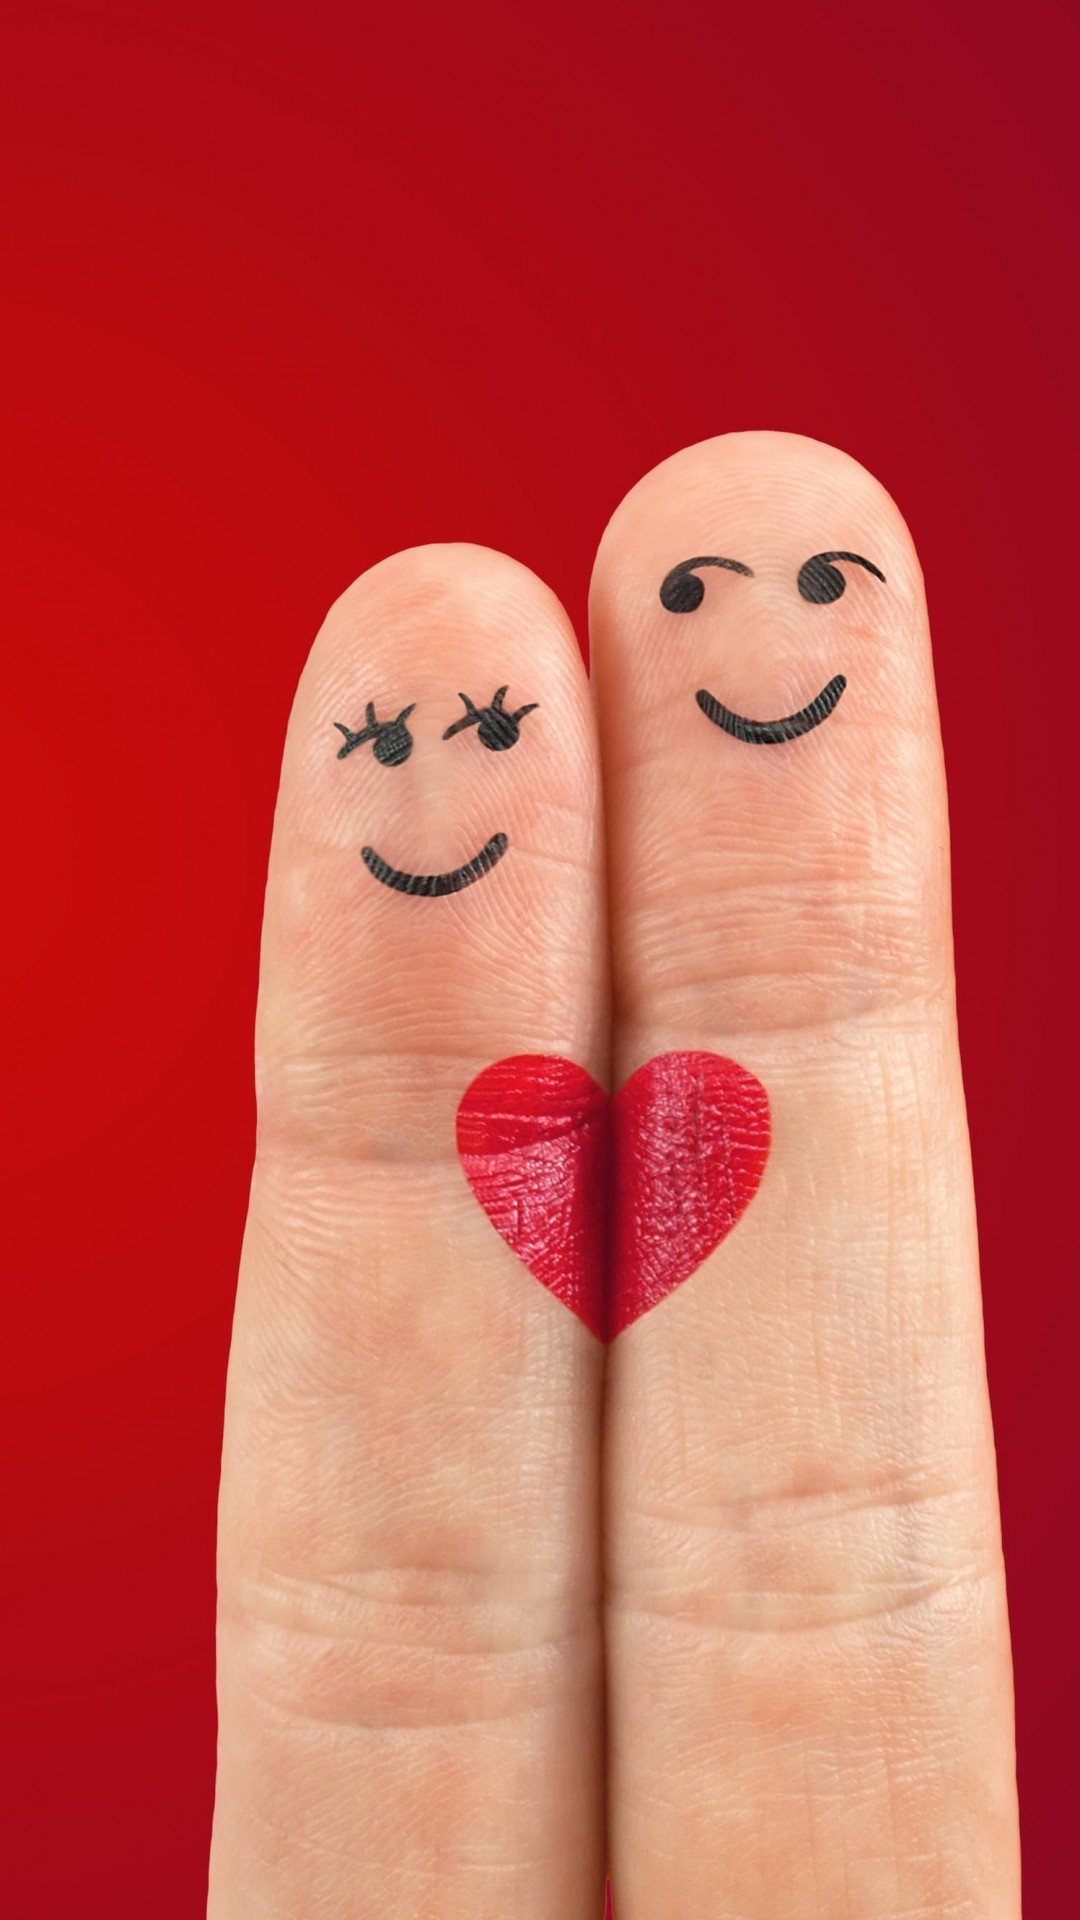 Fingers in Love Wallpaper for SONY Xperia Z3